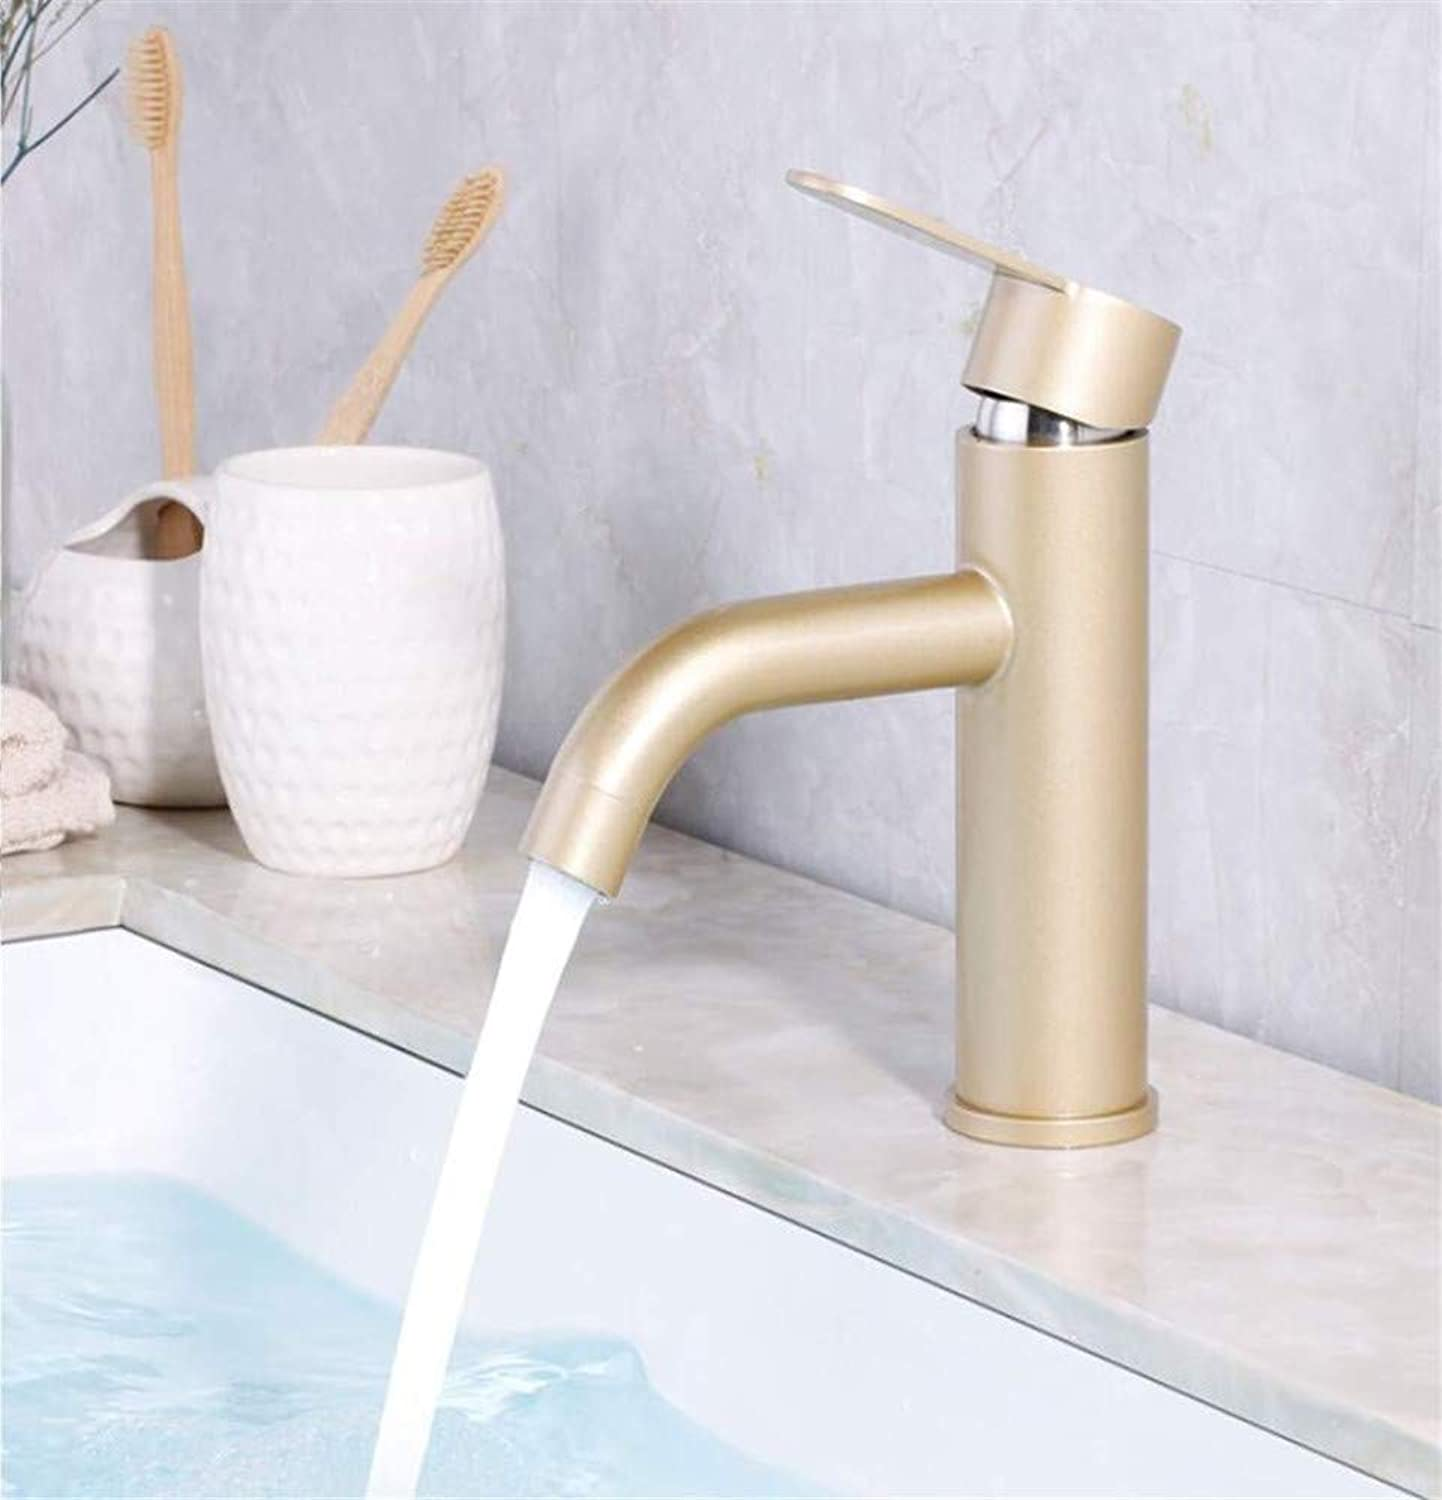 360° redating Faucet Retro Faucetbronze Antique Basin Faucet Champagne Tap Luxurious Design